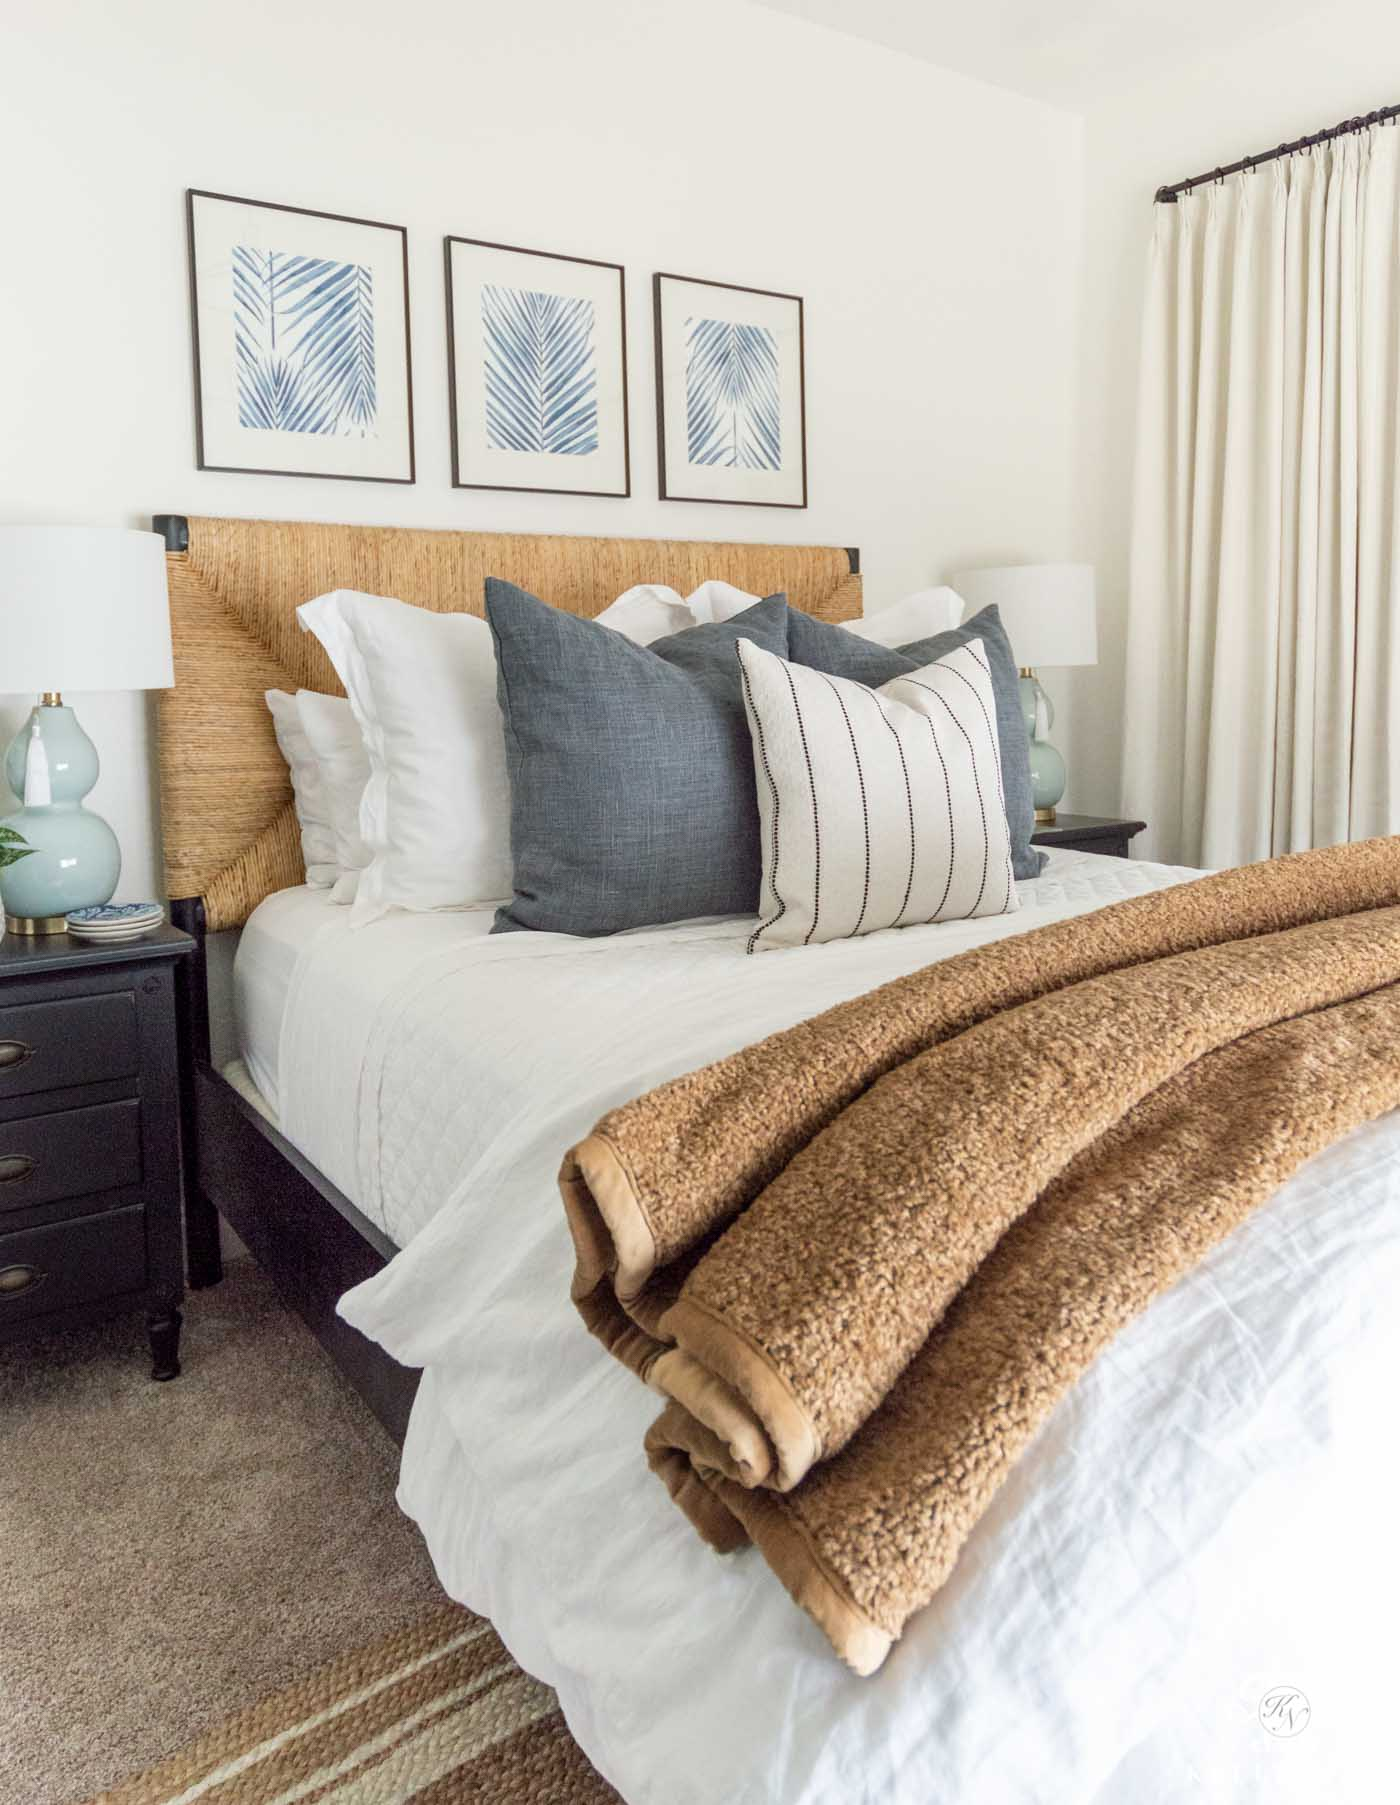 Guest Bedroom Makeover Reveal with Easy , Affordable DIYs!